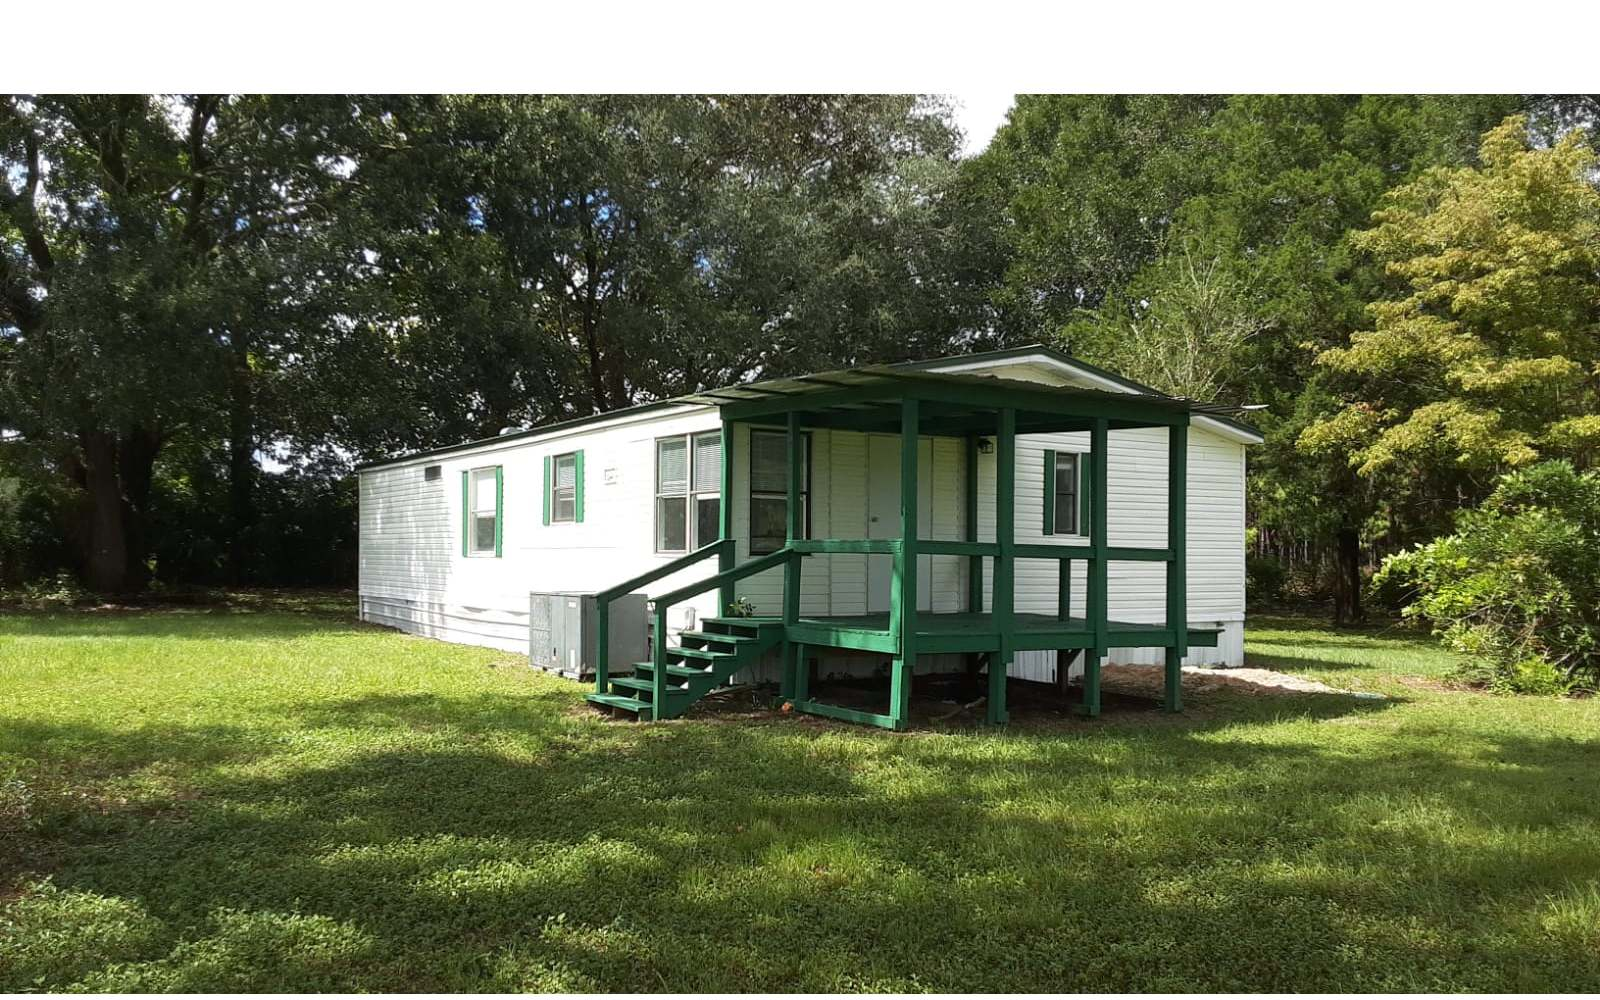 3-Bedroom Mobile Home In Mayo